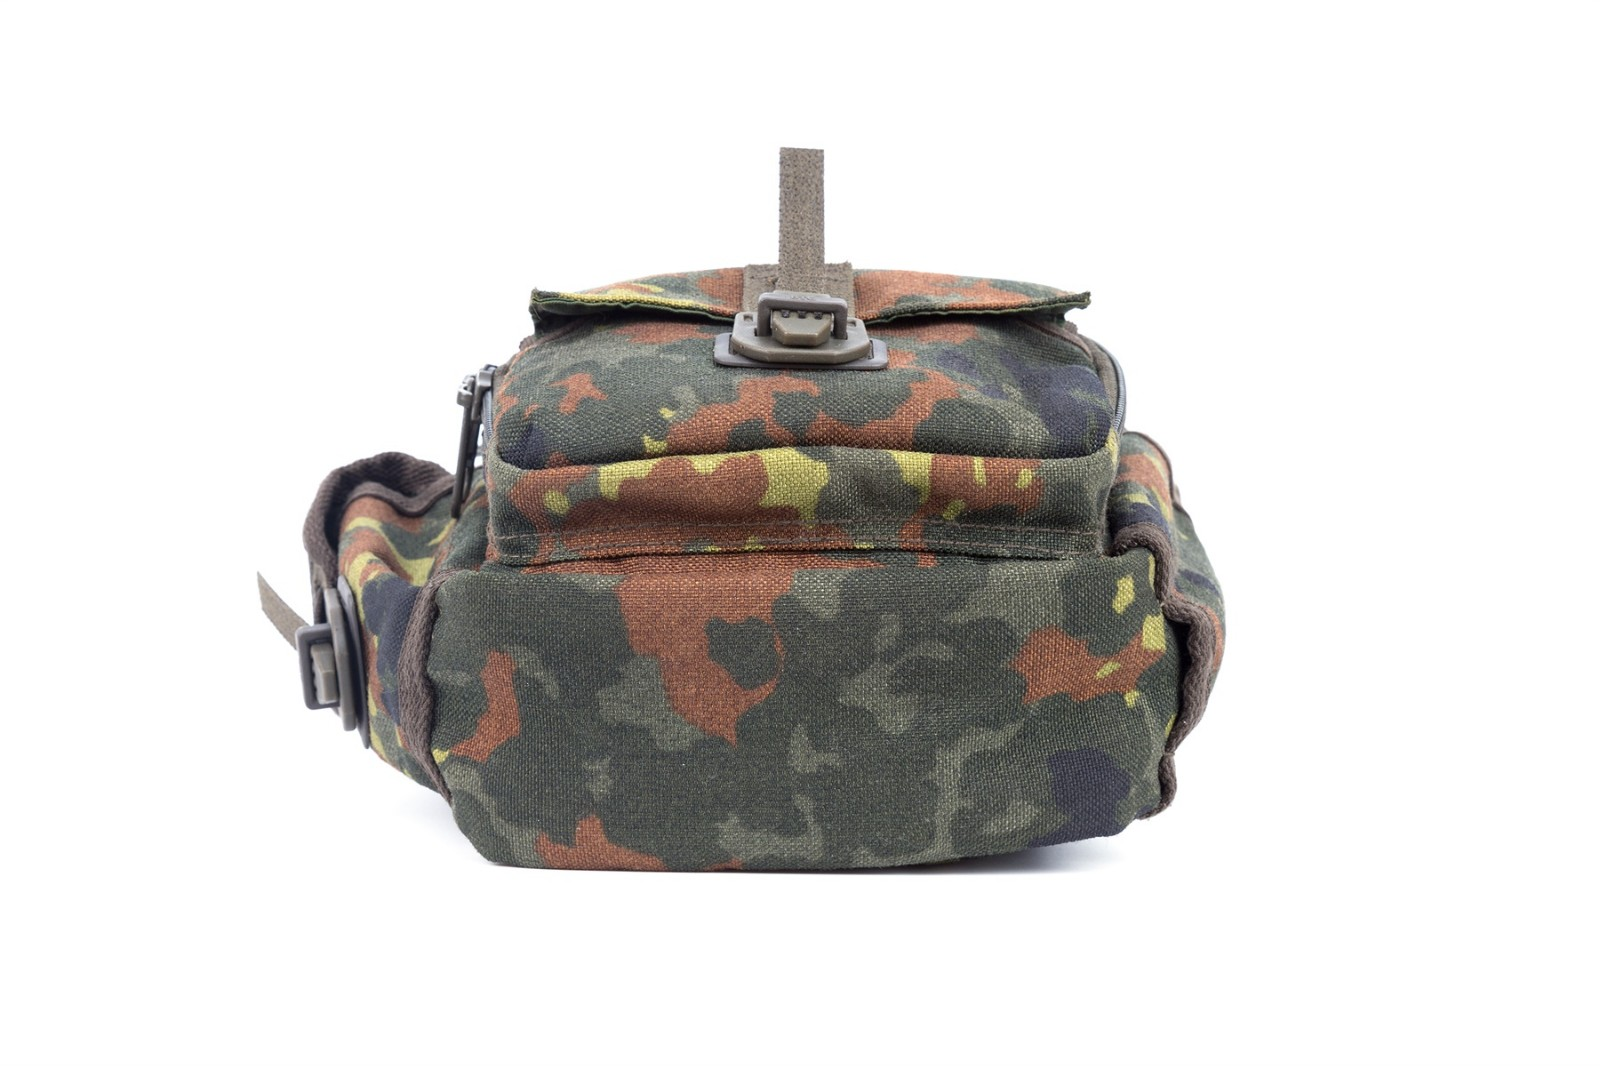 GF bags-Professional Military Gear Bags and Tactical Pouch Bag From GF Bags-7